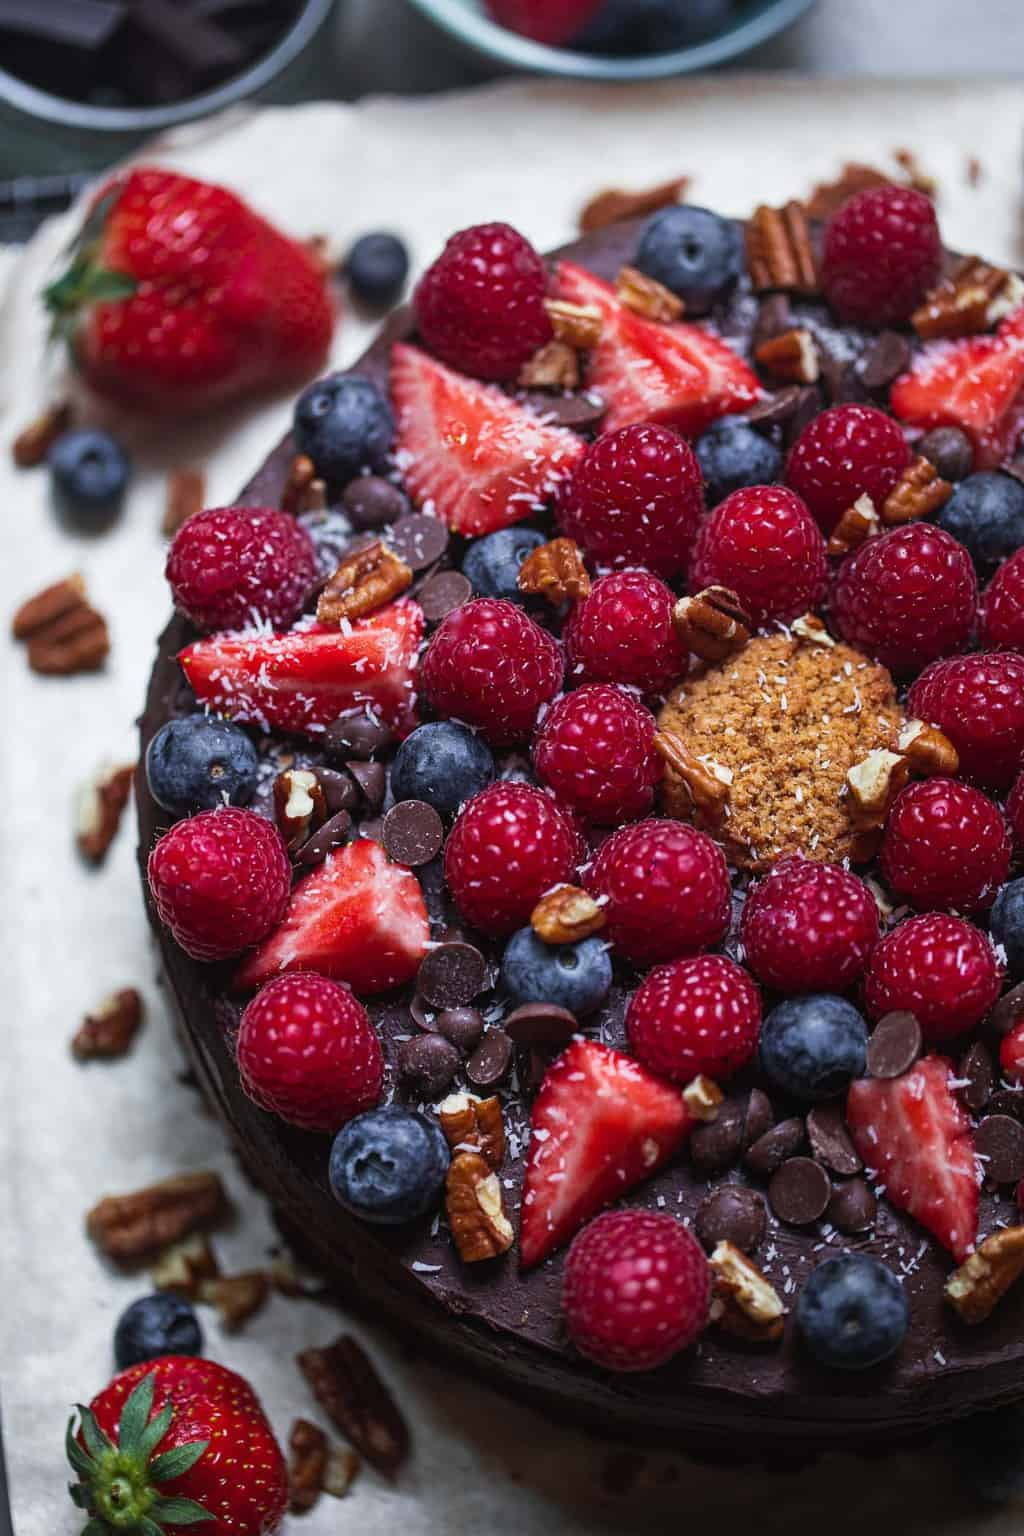 Closeup of berries on top of a cake